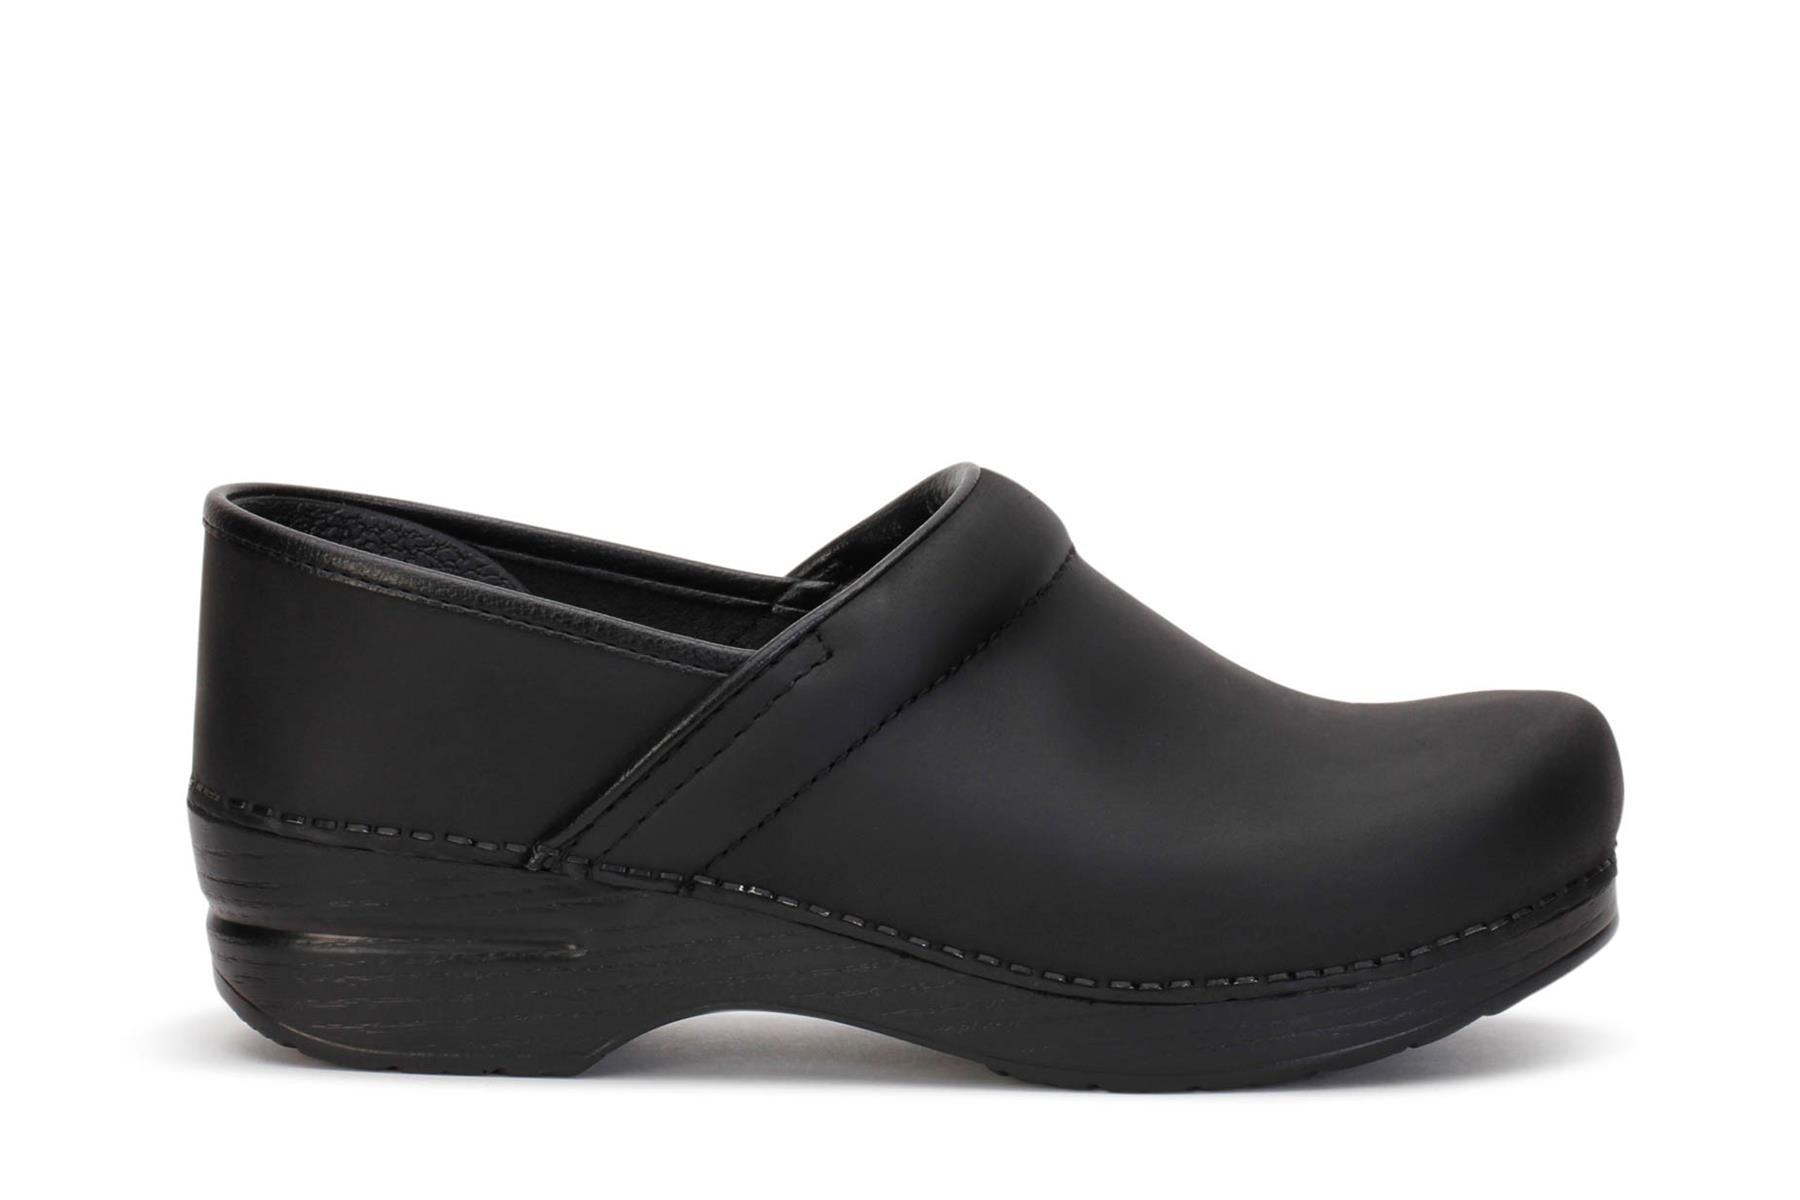 dansko-womens-clog-shoes-professional-oiled-black-leather-206-020202-main